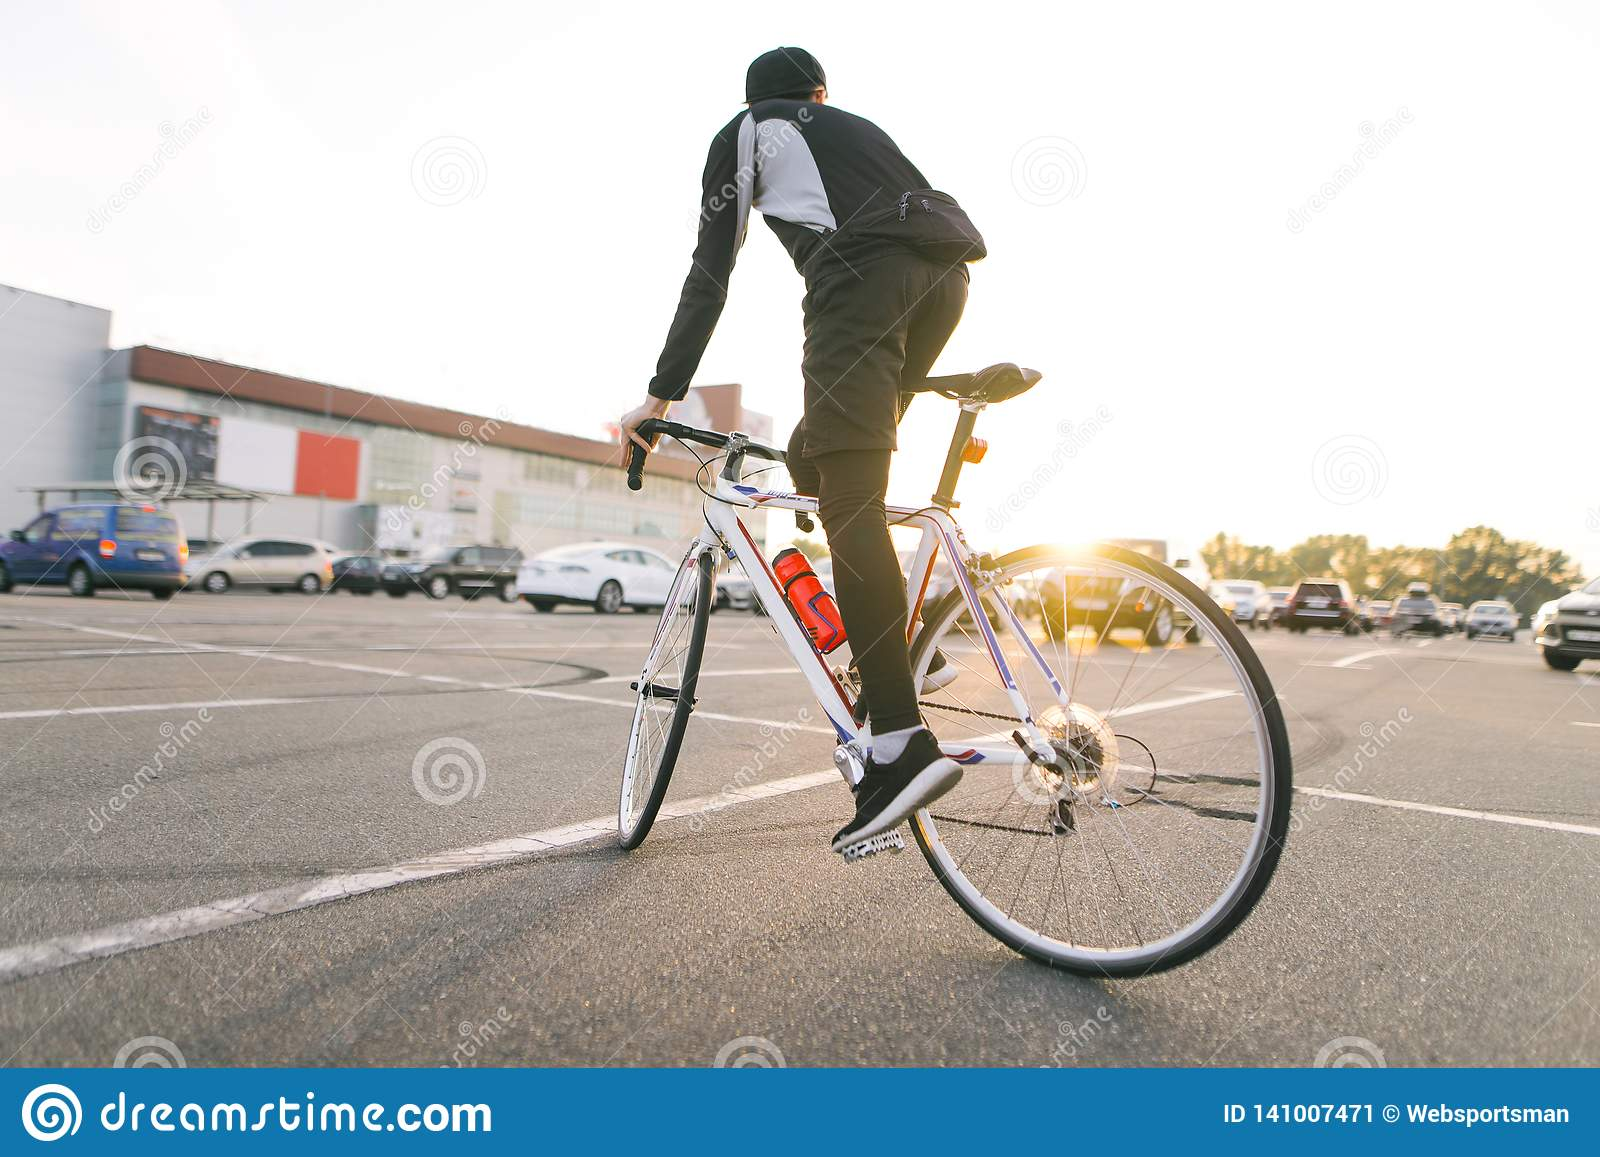 Back of a cyclist rides on a white highway bike on car parking, sunset and modern architecture on the background